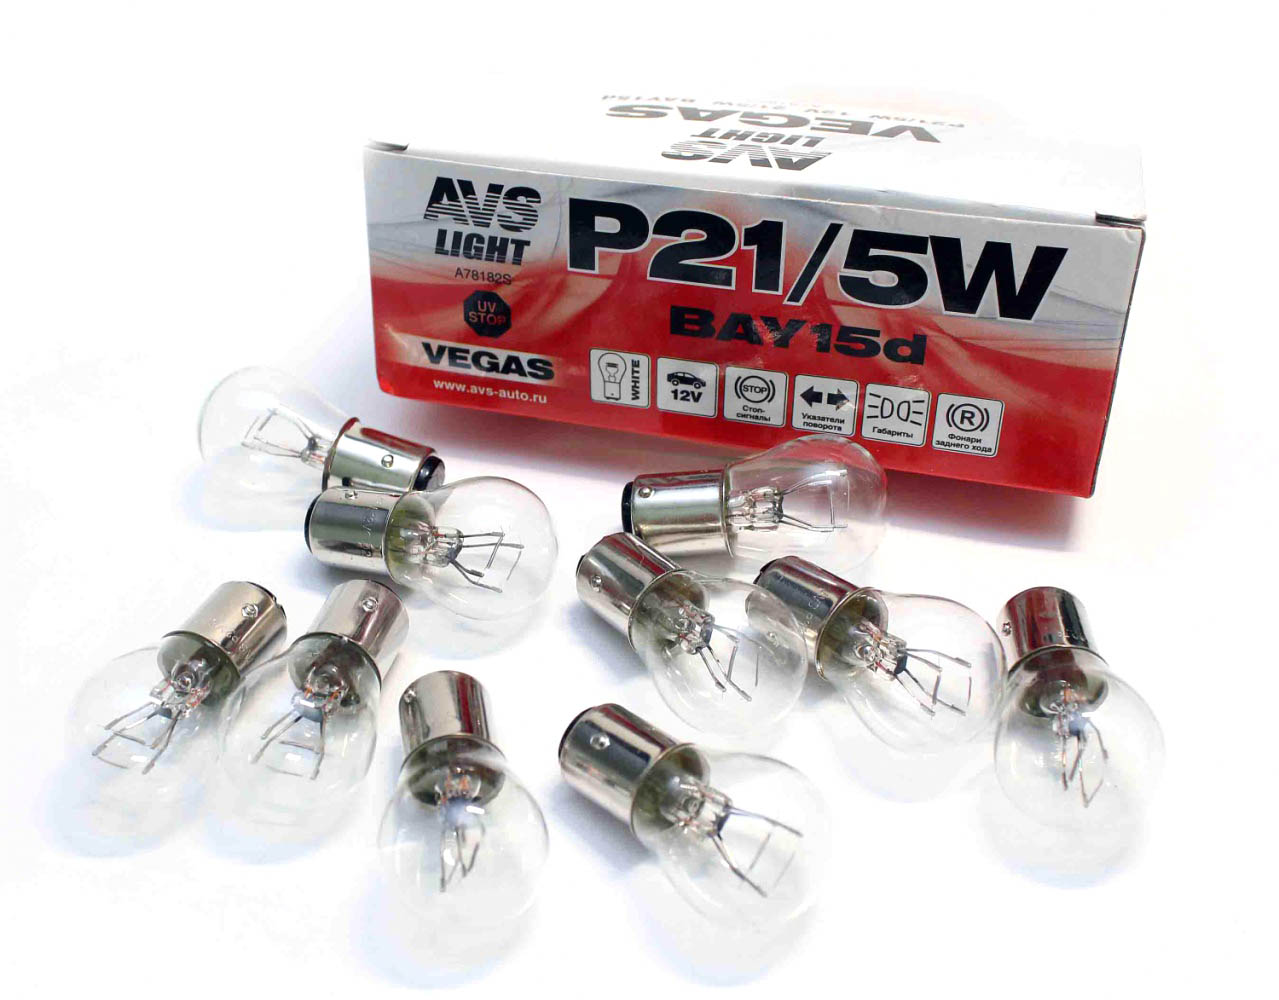 Лампа автомобильная AVS Vegas P21/5W BAY15D 12V Box, 10шт (A78182S) лампа philips p21 5w 12v 2 0 3w bay15d led 12899rx2 2шт